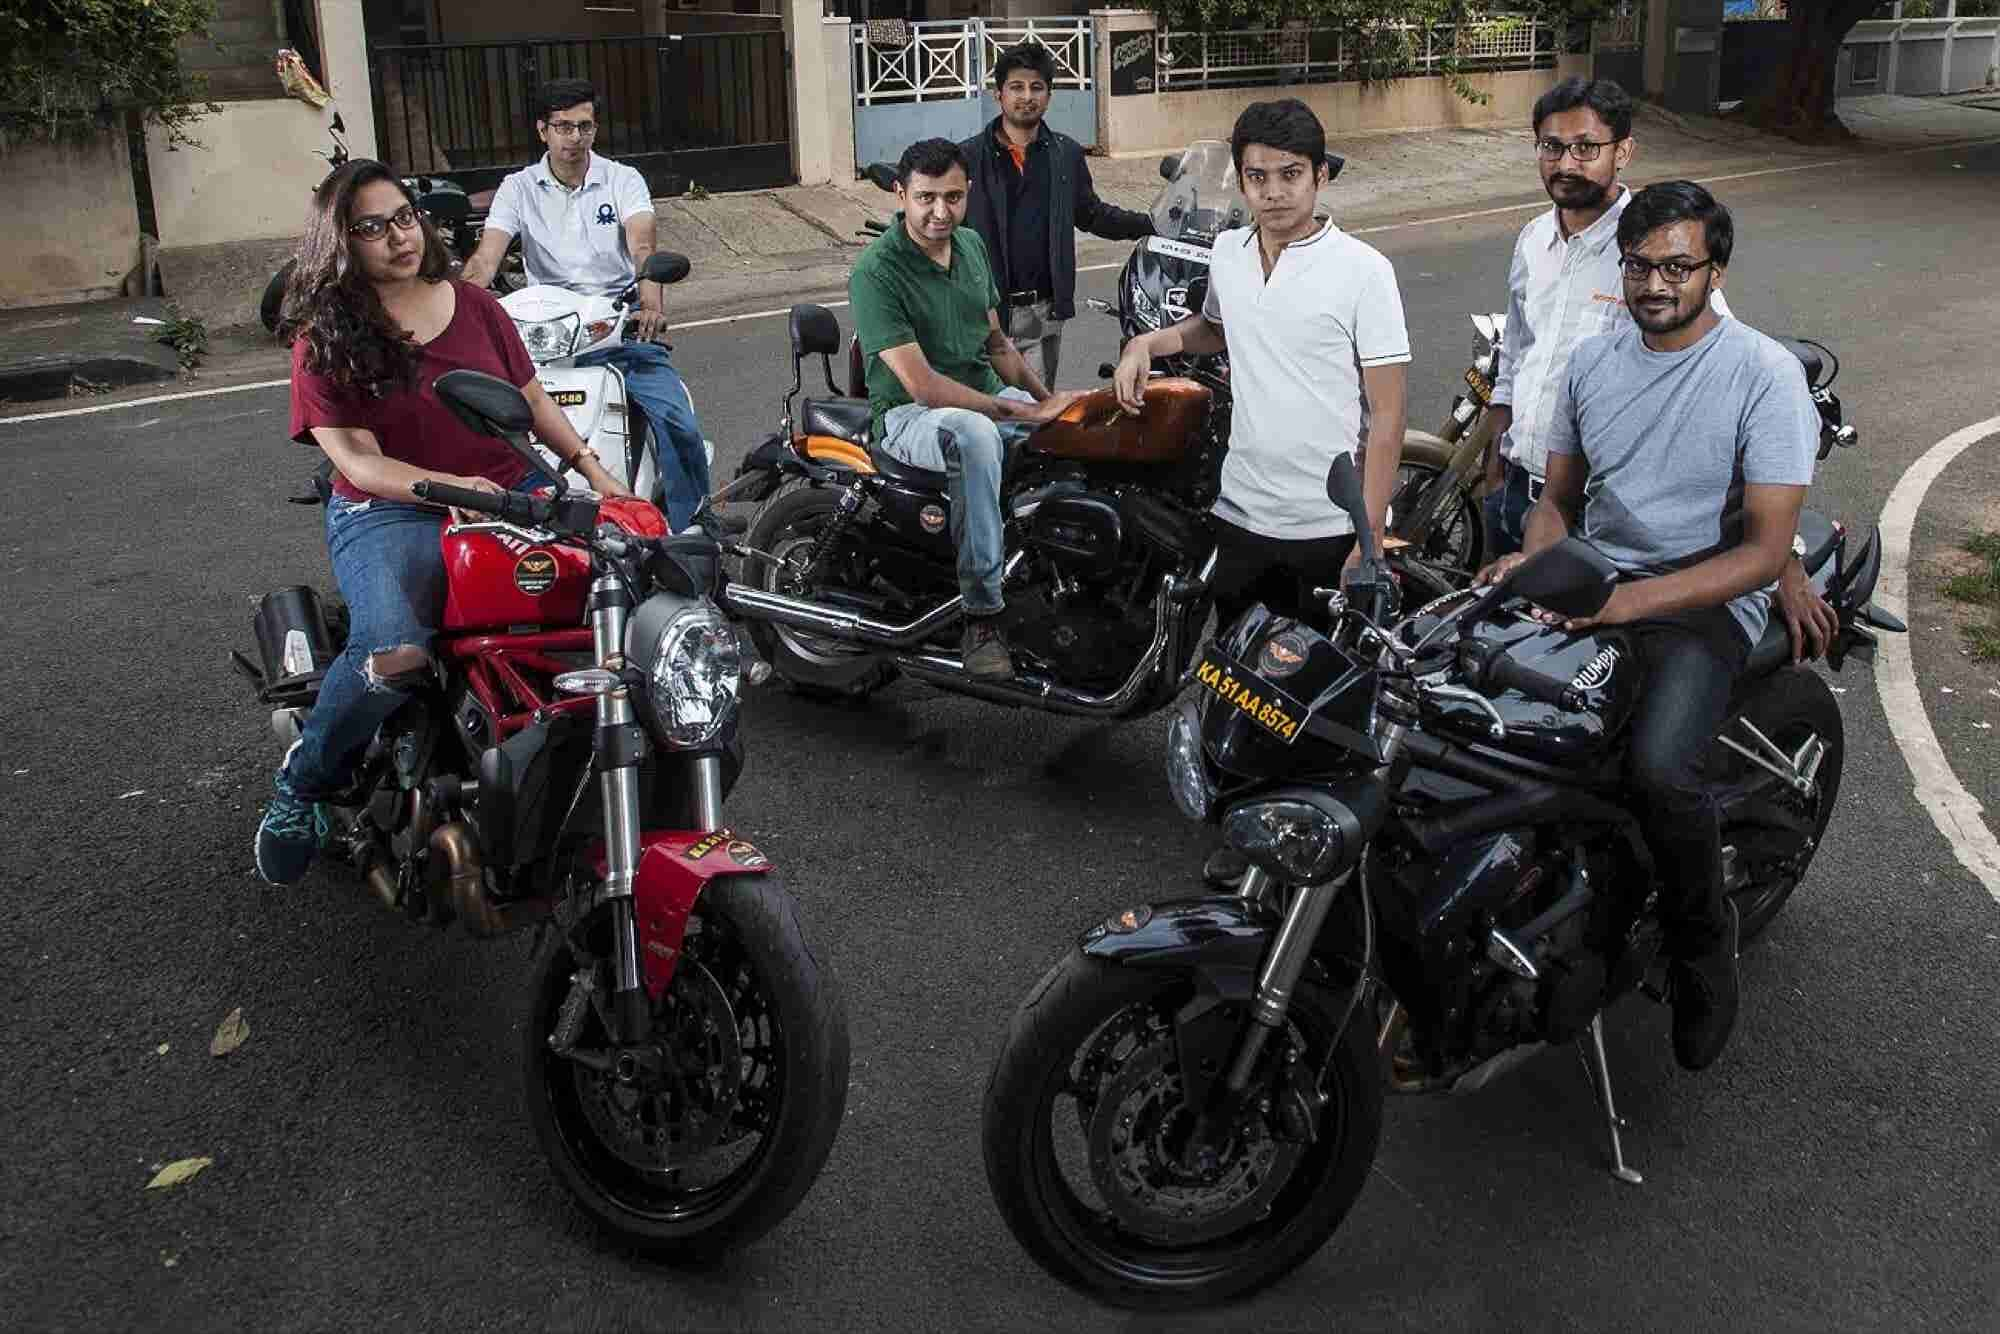 These Bike Rental Start-ups are Finding Opportunities in the Other Sid...